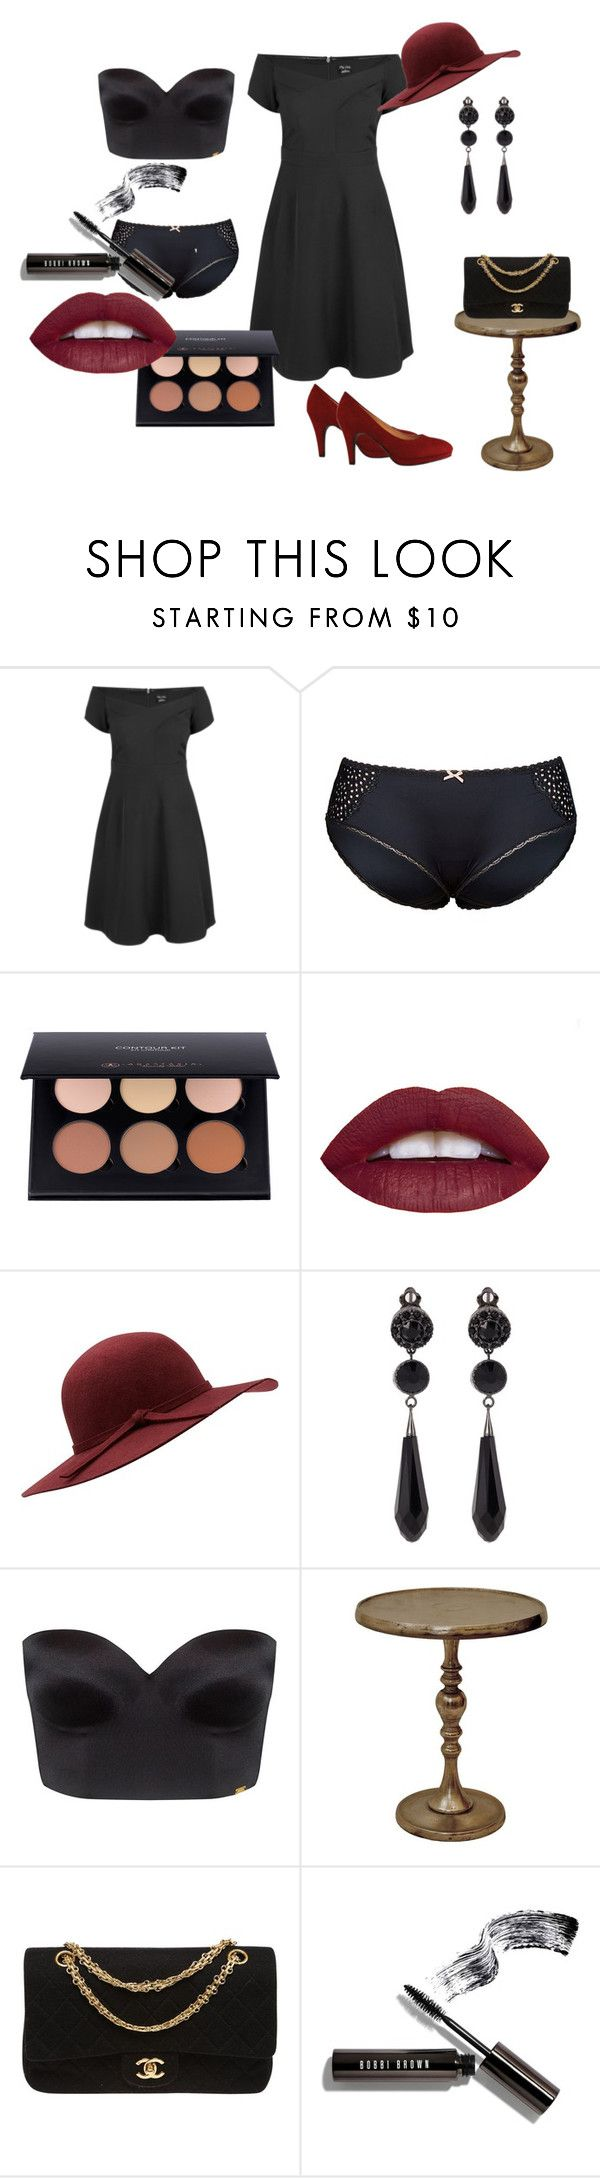 """""""Curvy Date"""" by lynetteamaro on Polyvore featuring City Chic, Givenchy, Ultimo, Renwil, Chanel, Bobbi Brown Cosmetics, SexyandCurvy and plus size dresses"""